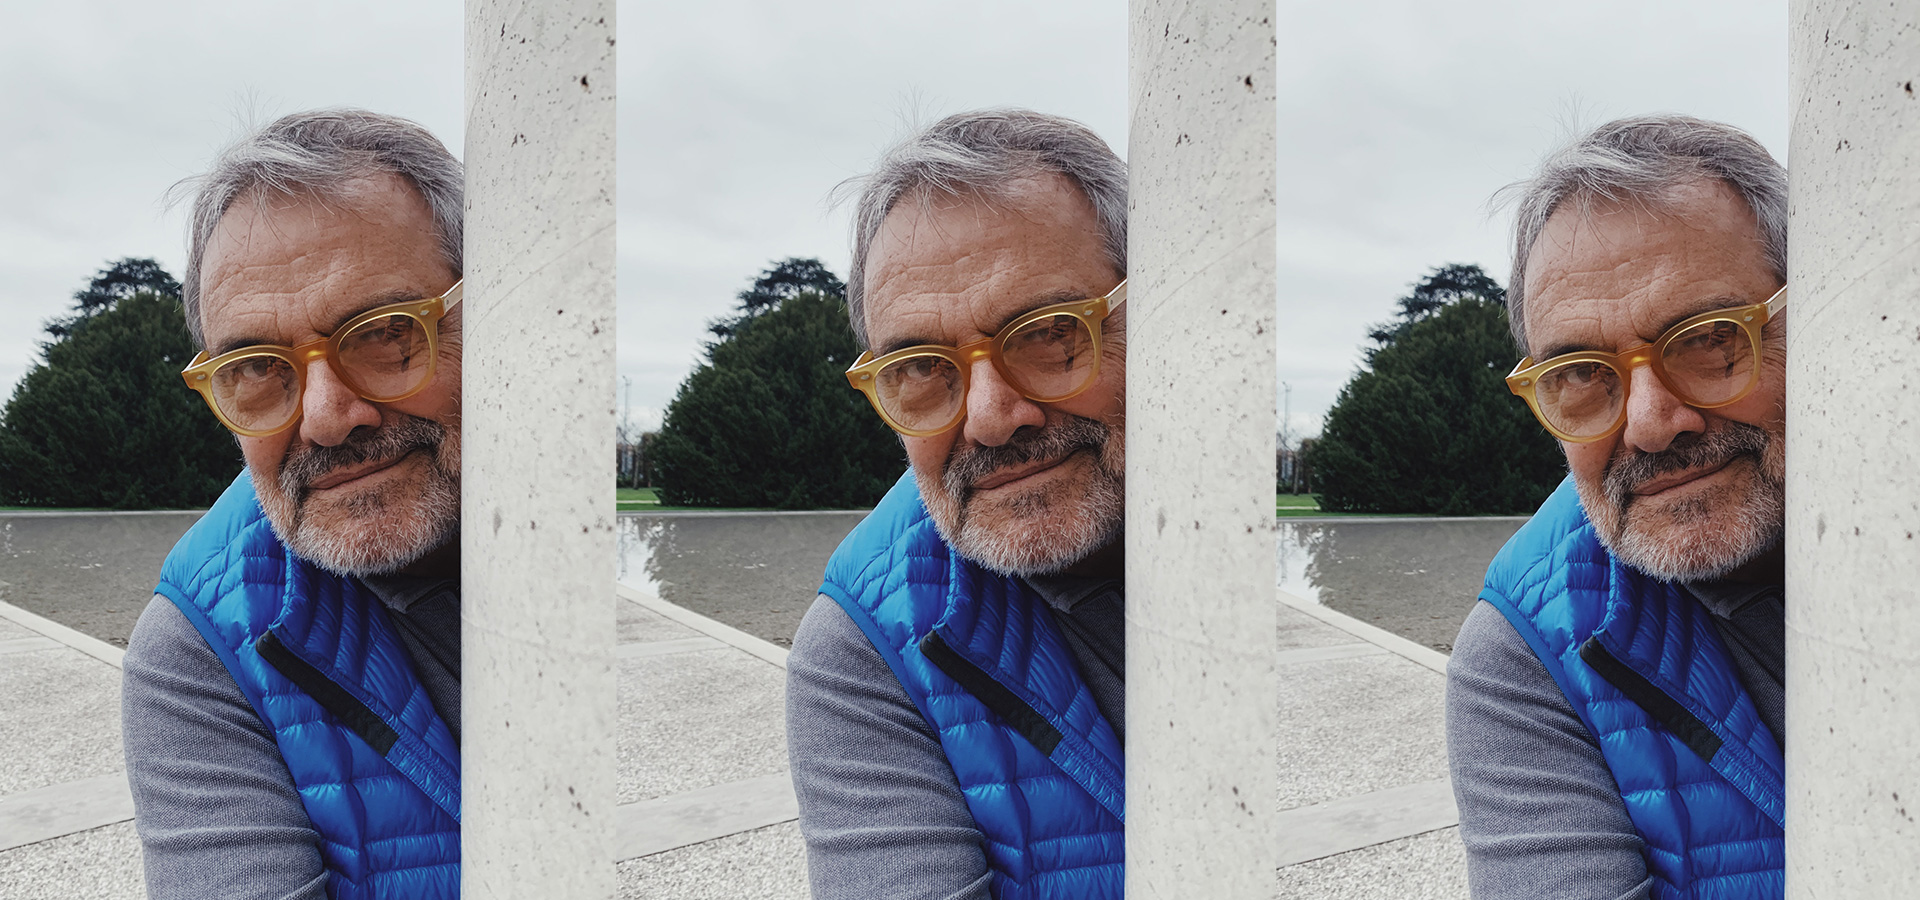 Oliviero Toscani shares his thoughts on life, Internet madness, advertising, n on his own work.